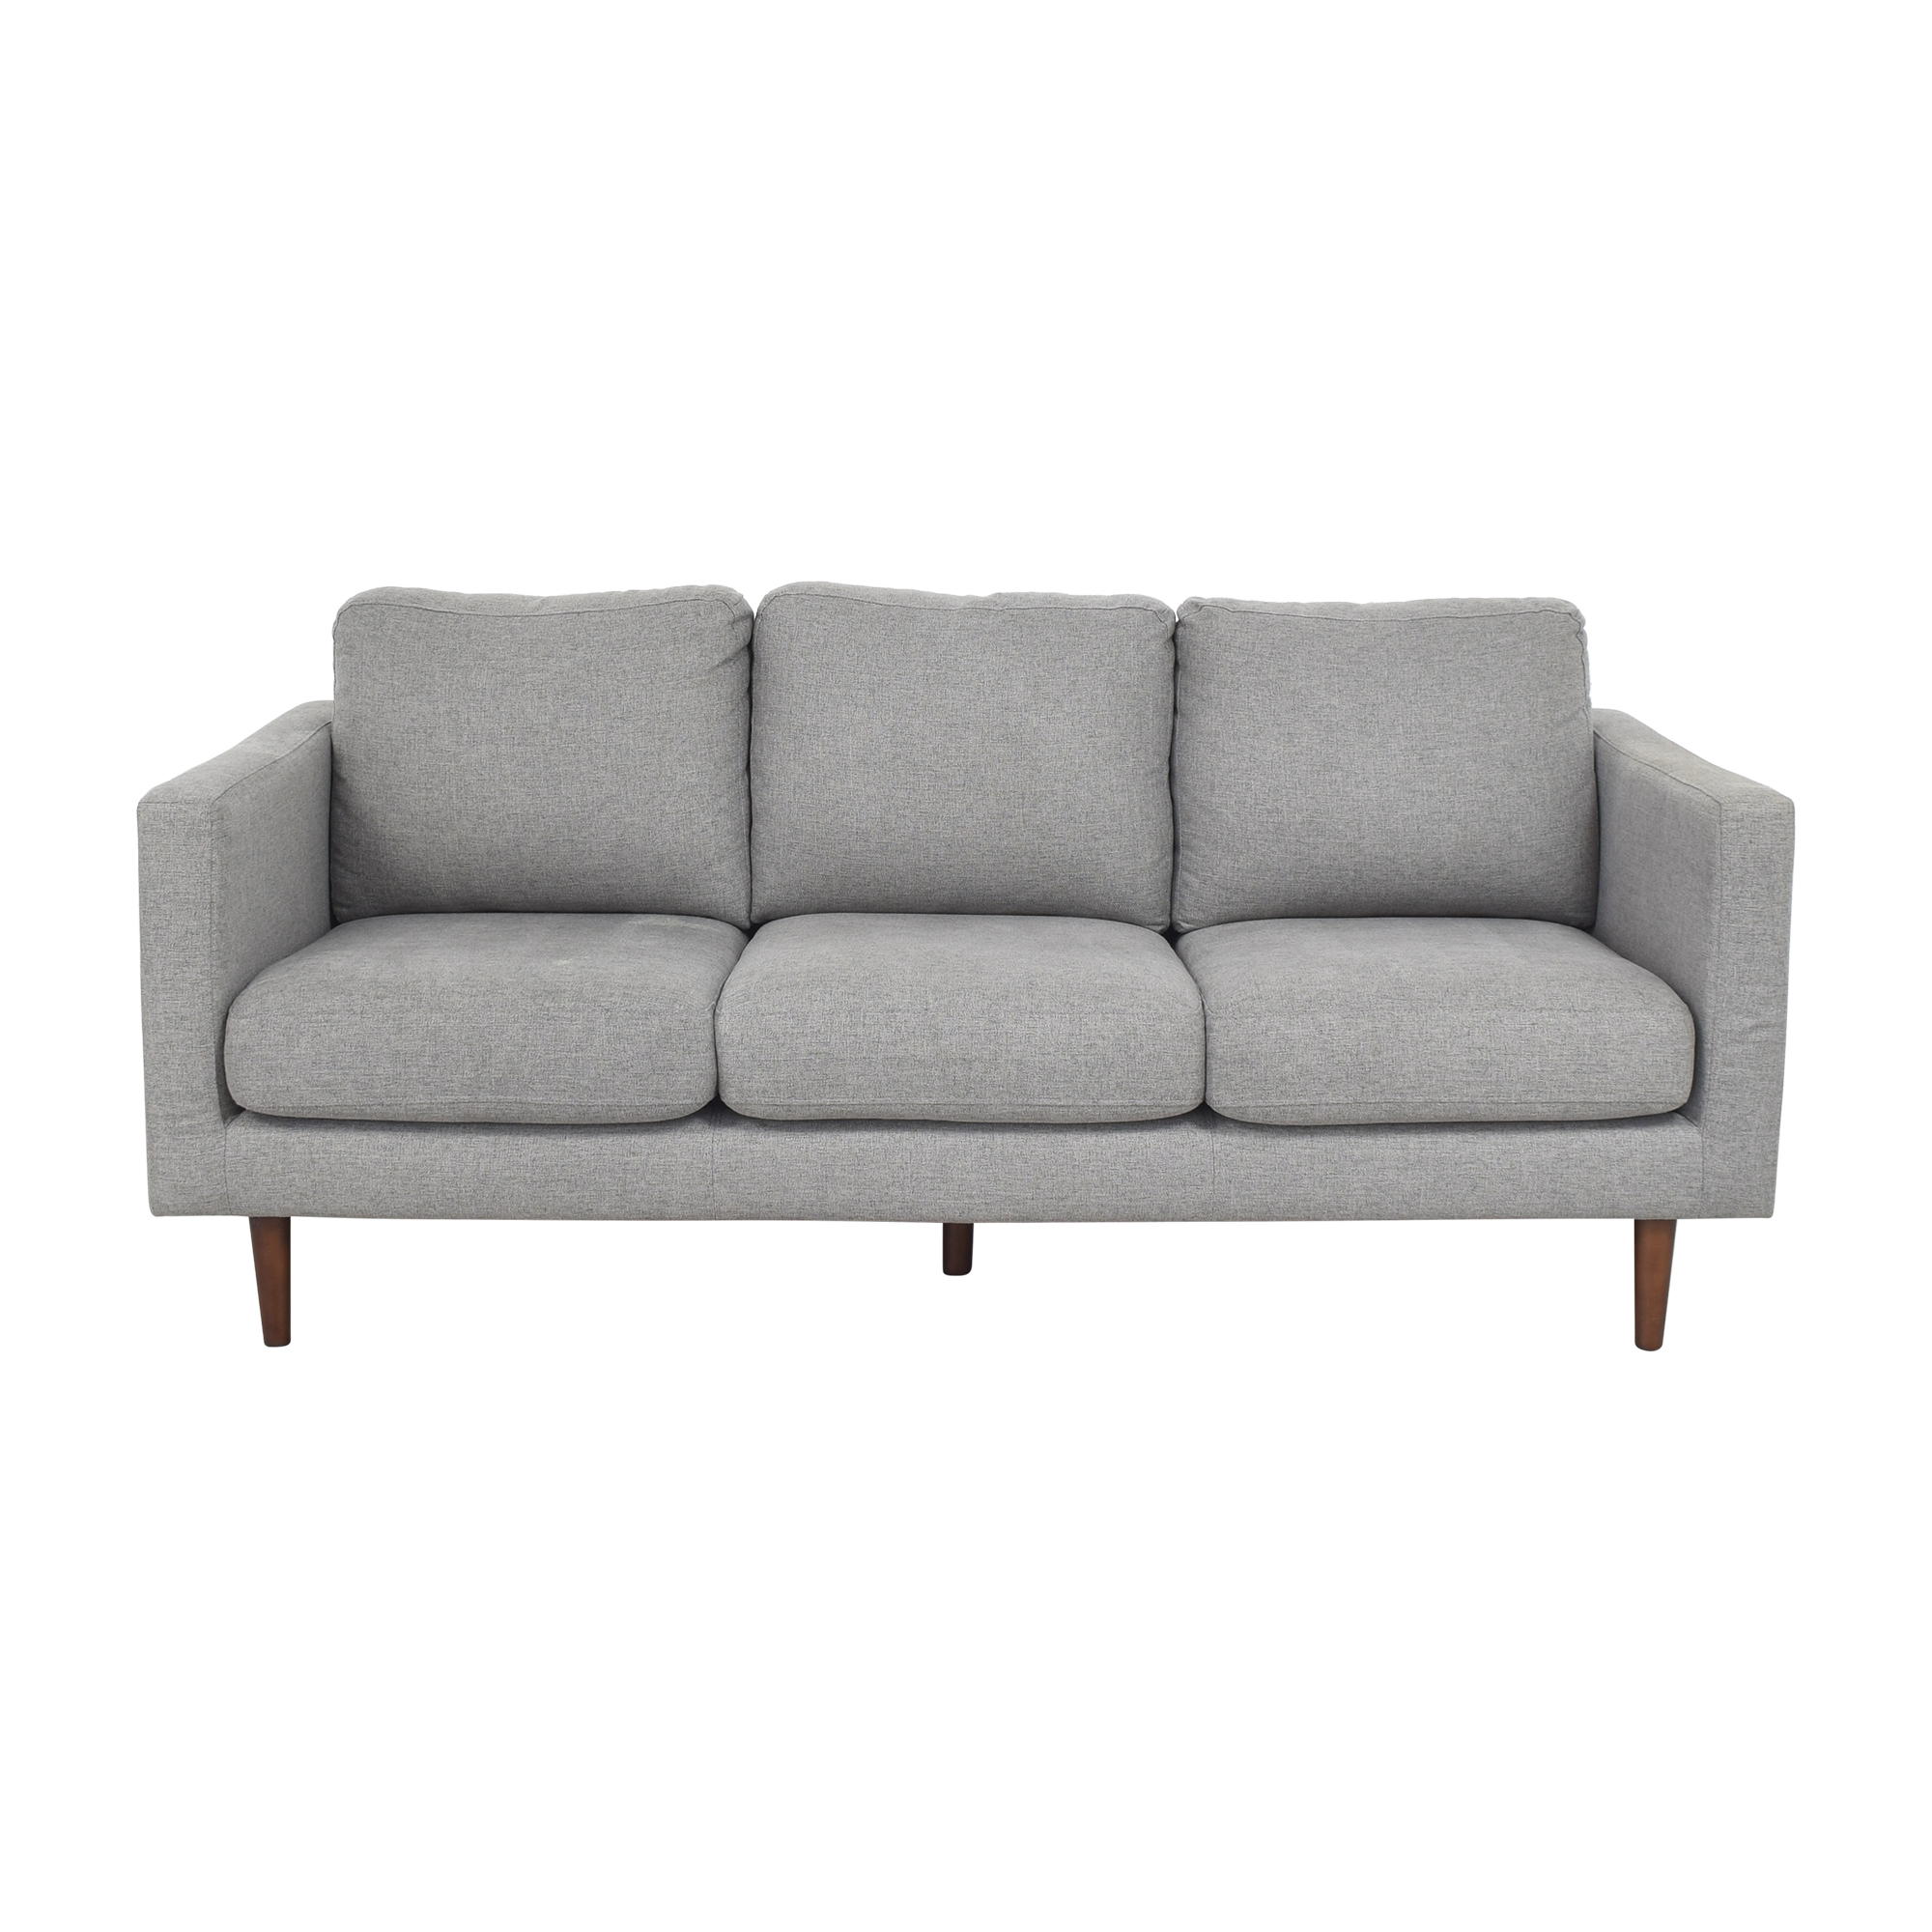 Amazon Amazon Rivet Revolve Modern Upholstered Sofa discount